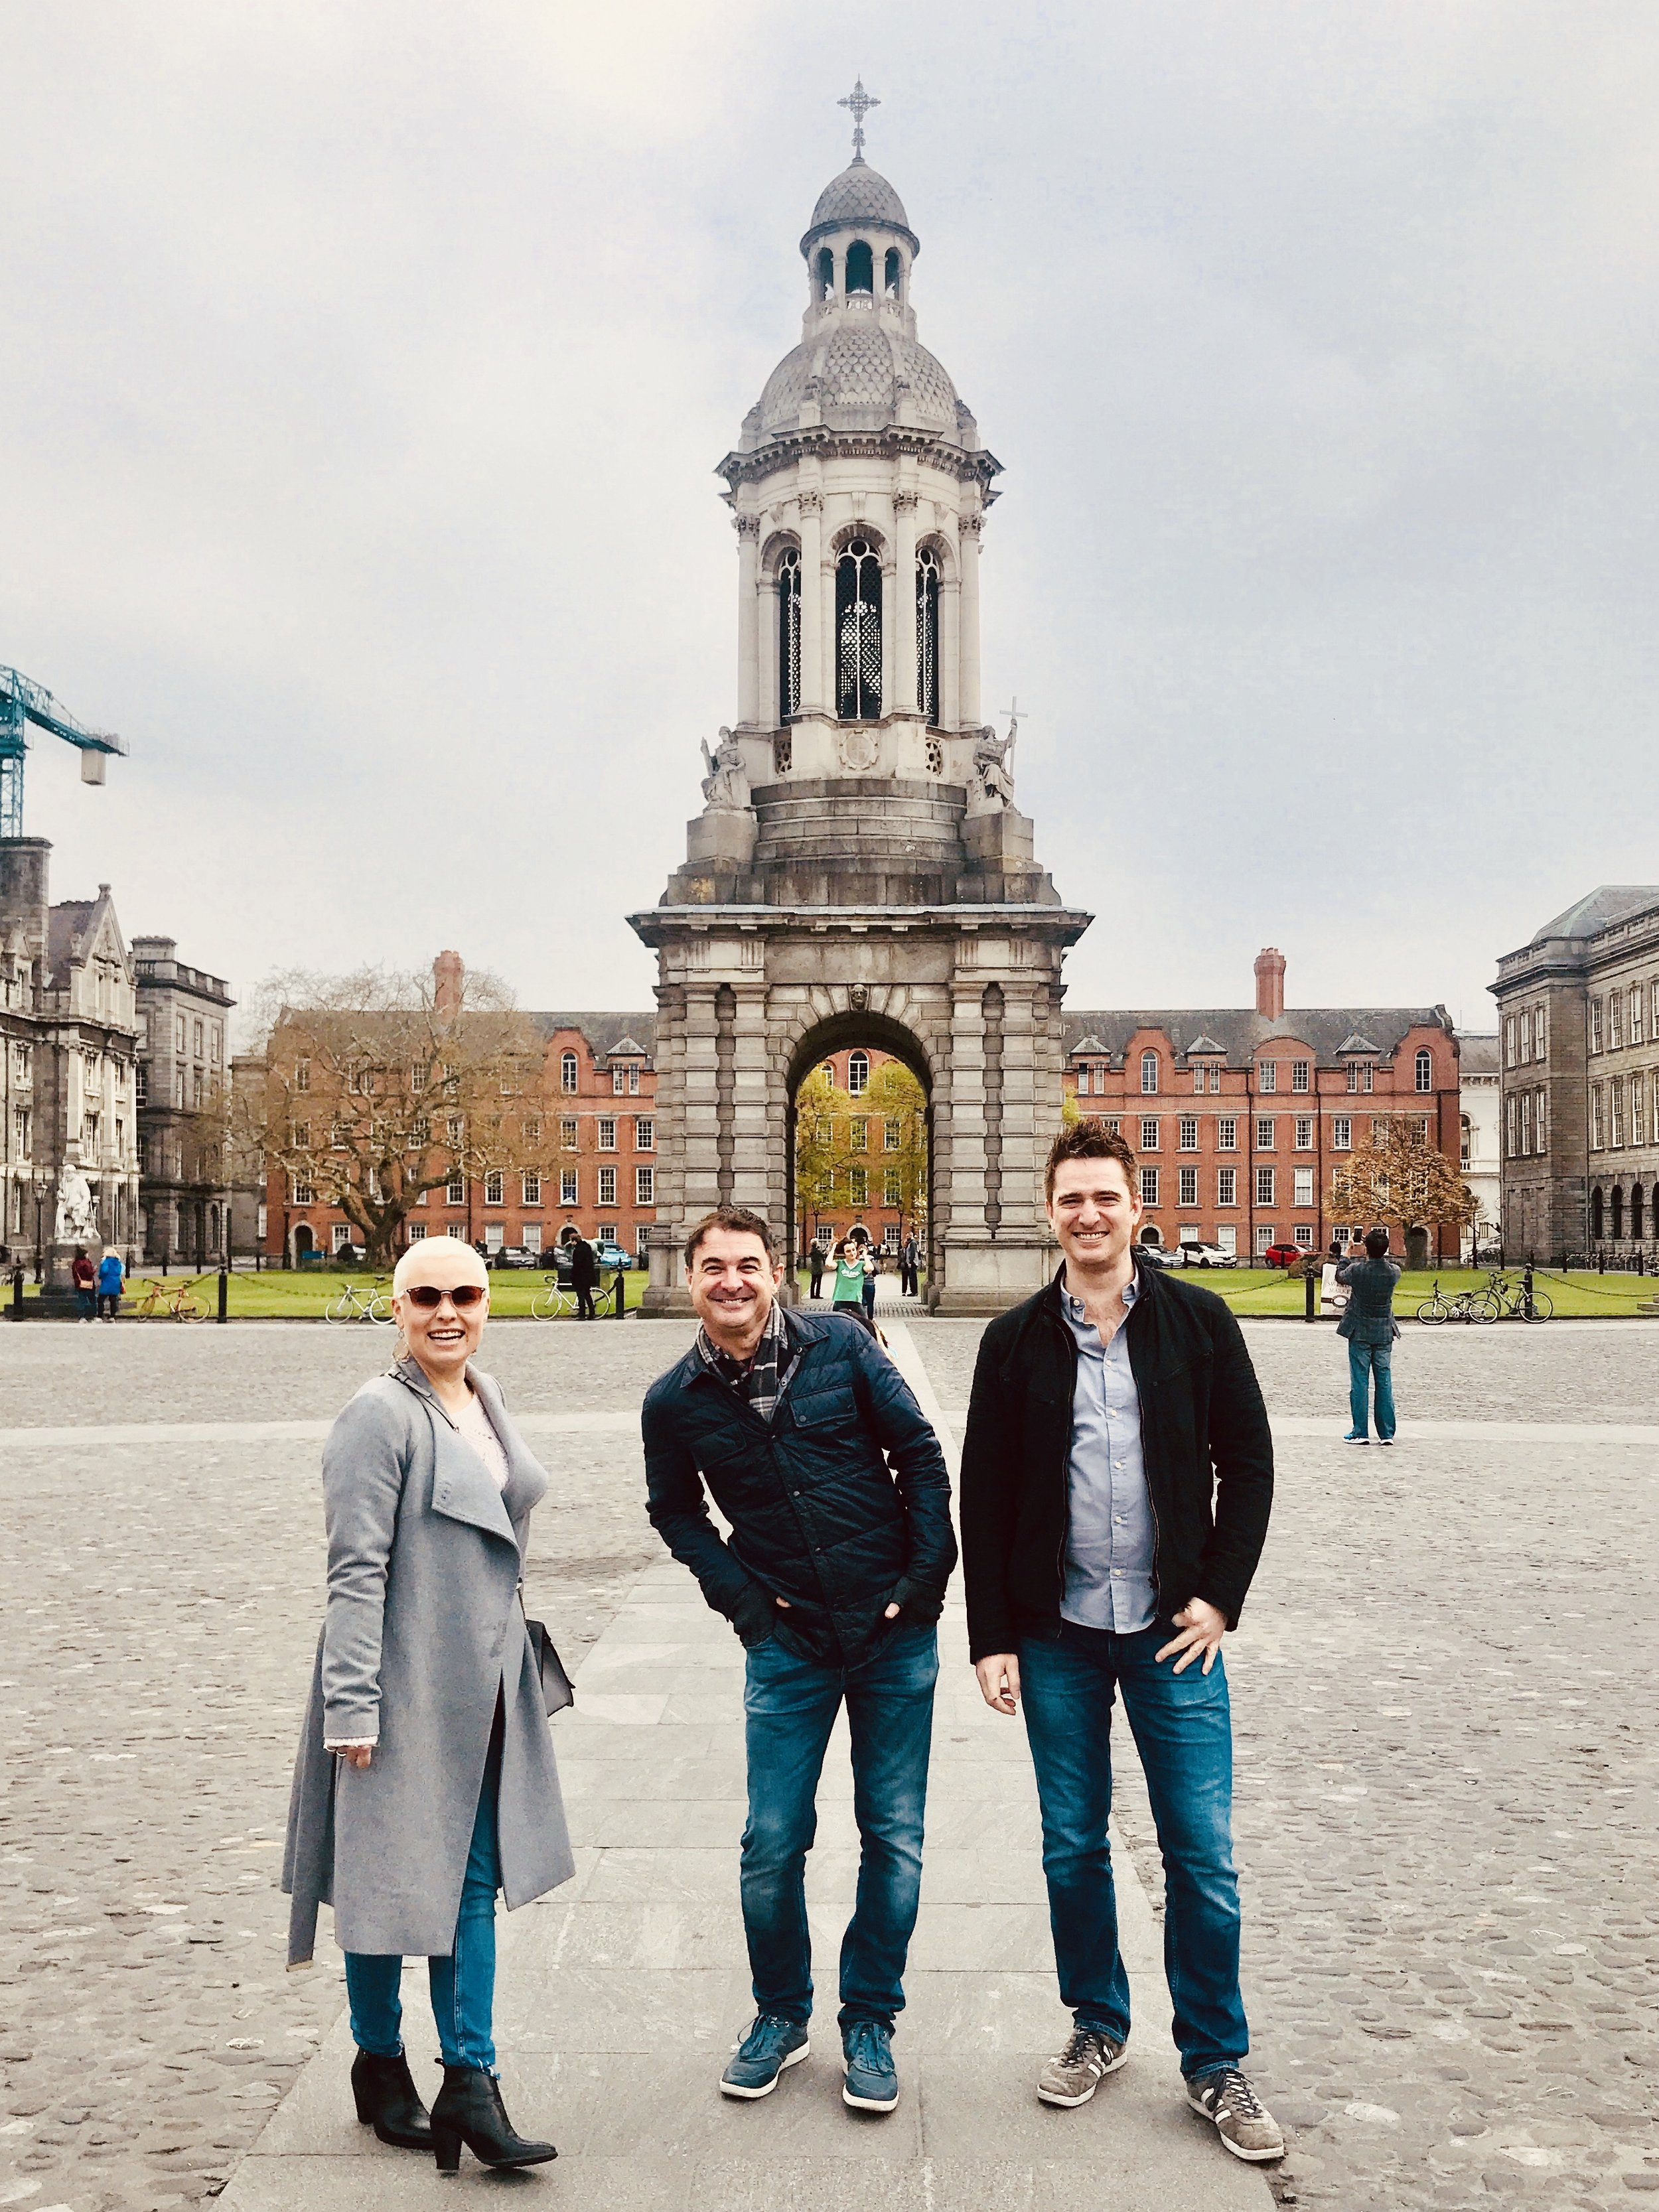 My partner  snapped this photo during our walk through Dublin's Trinity College with our favorite Londoners. According to my Gyroscope data, I totaled 301,331 steps during those four weeks or around 10,762 steps a day walking and exploring the city, nearly double my daily average.